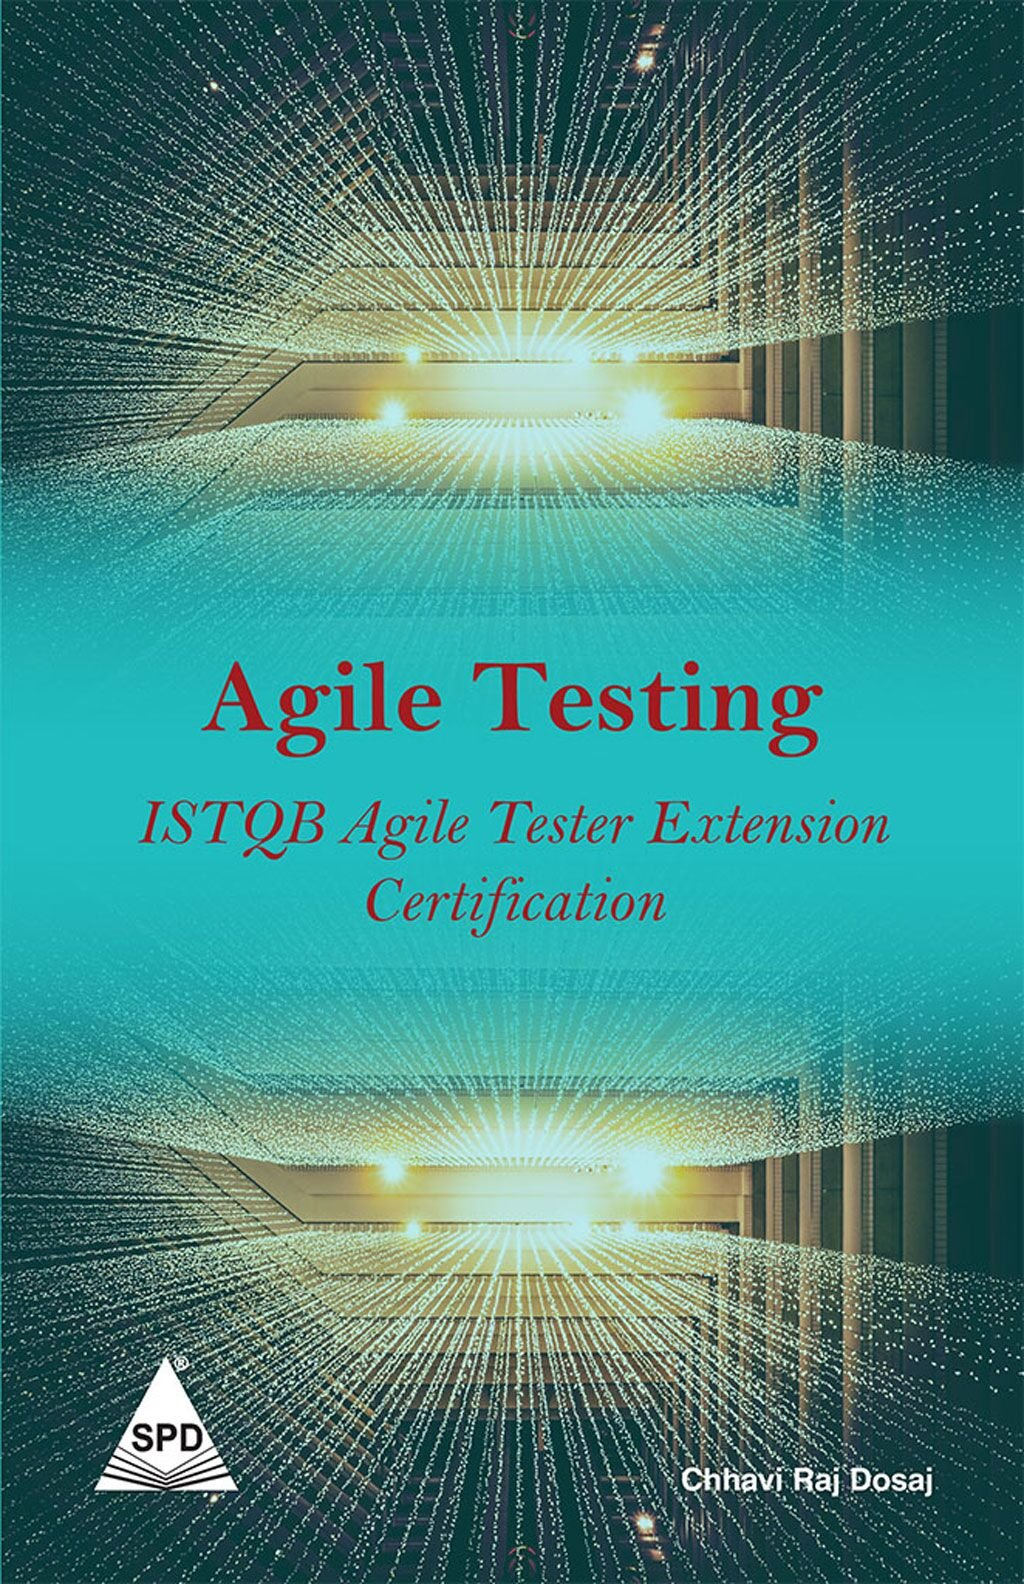 Agile Testing: ISTQB Agile Tester Extension Certification: Chhavi Raj  Dosaj: 9789352135813: Amazon.com: Books